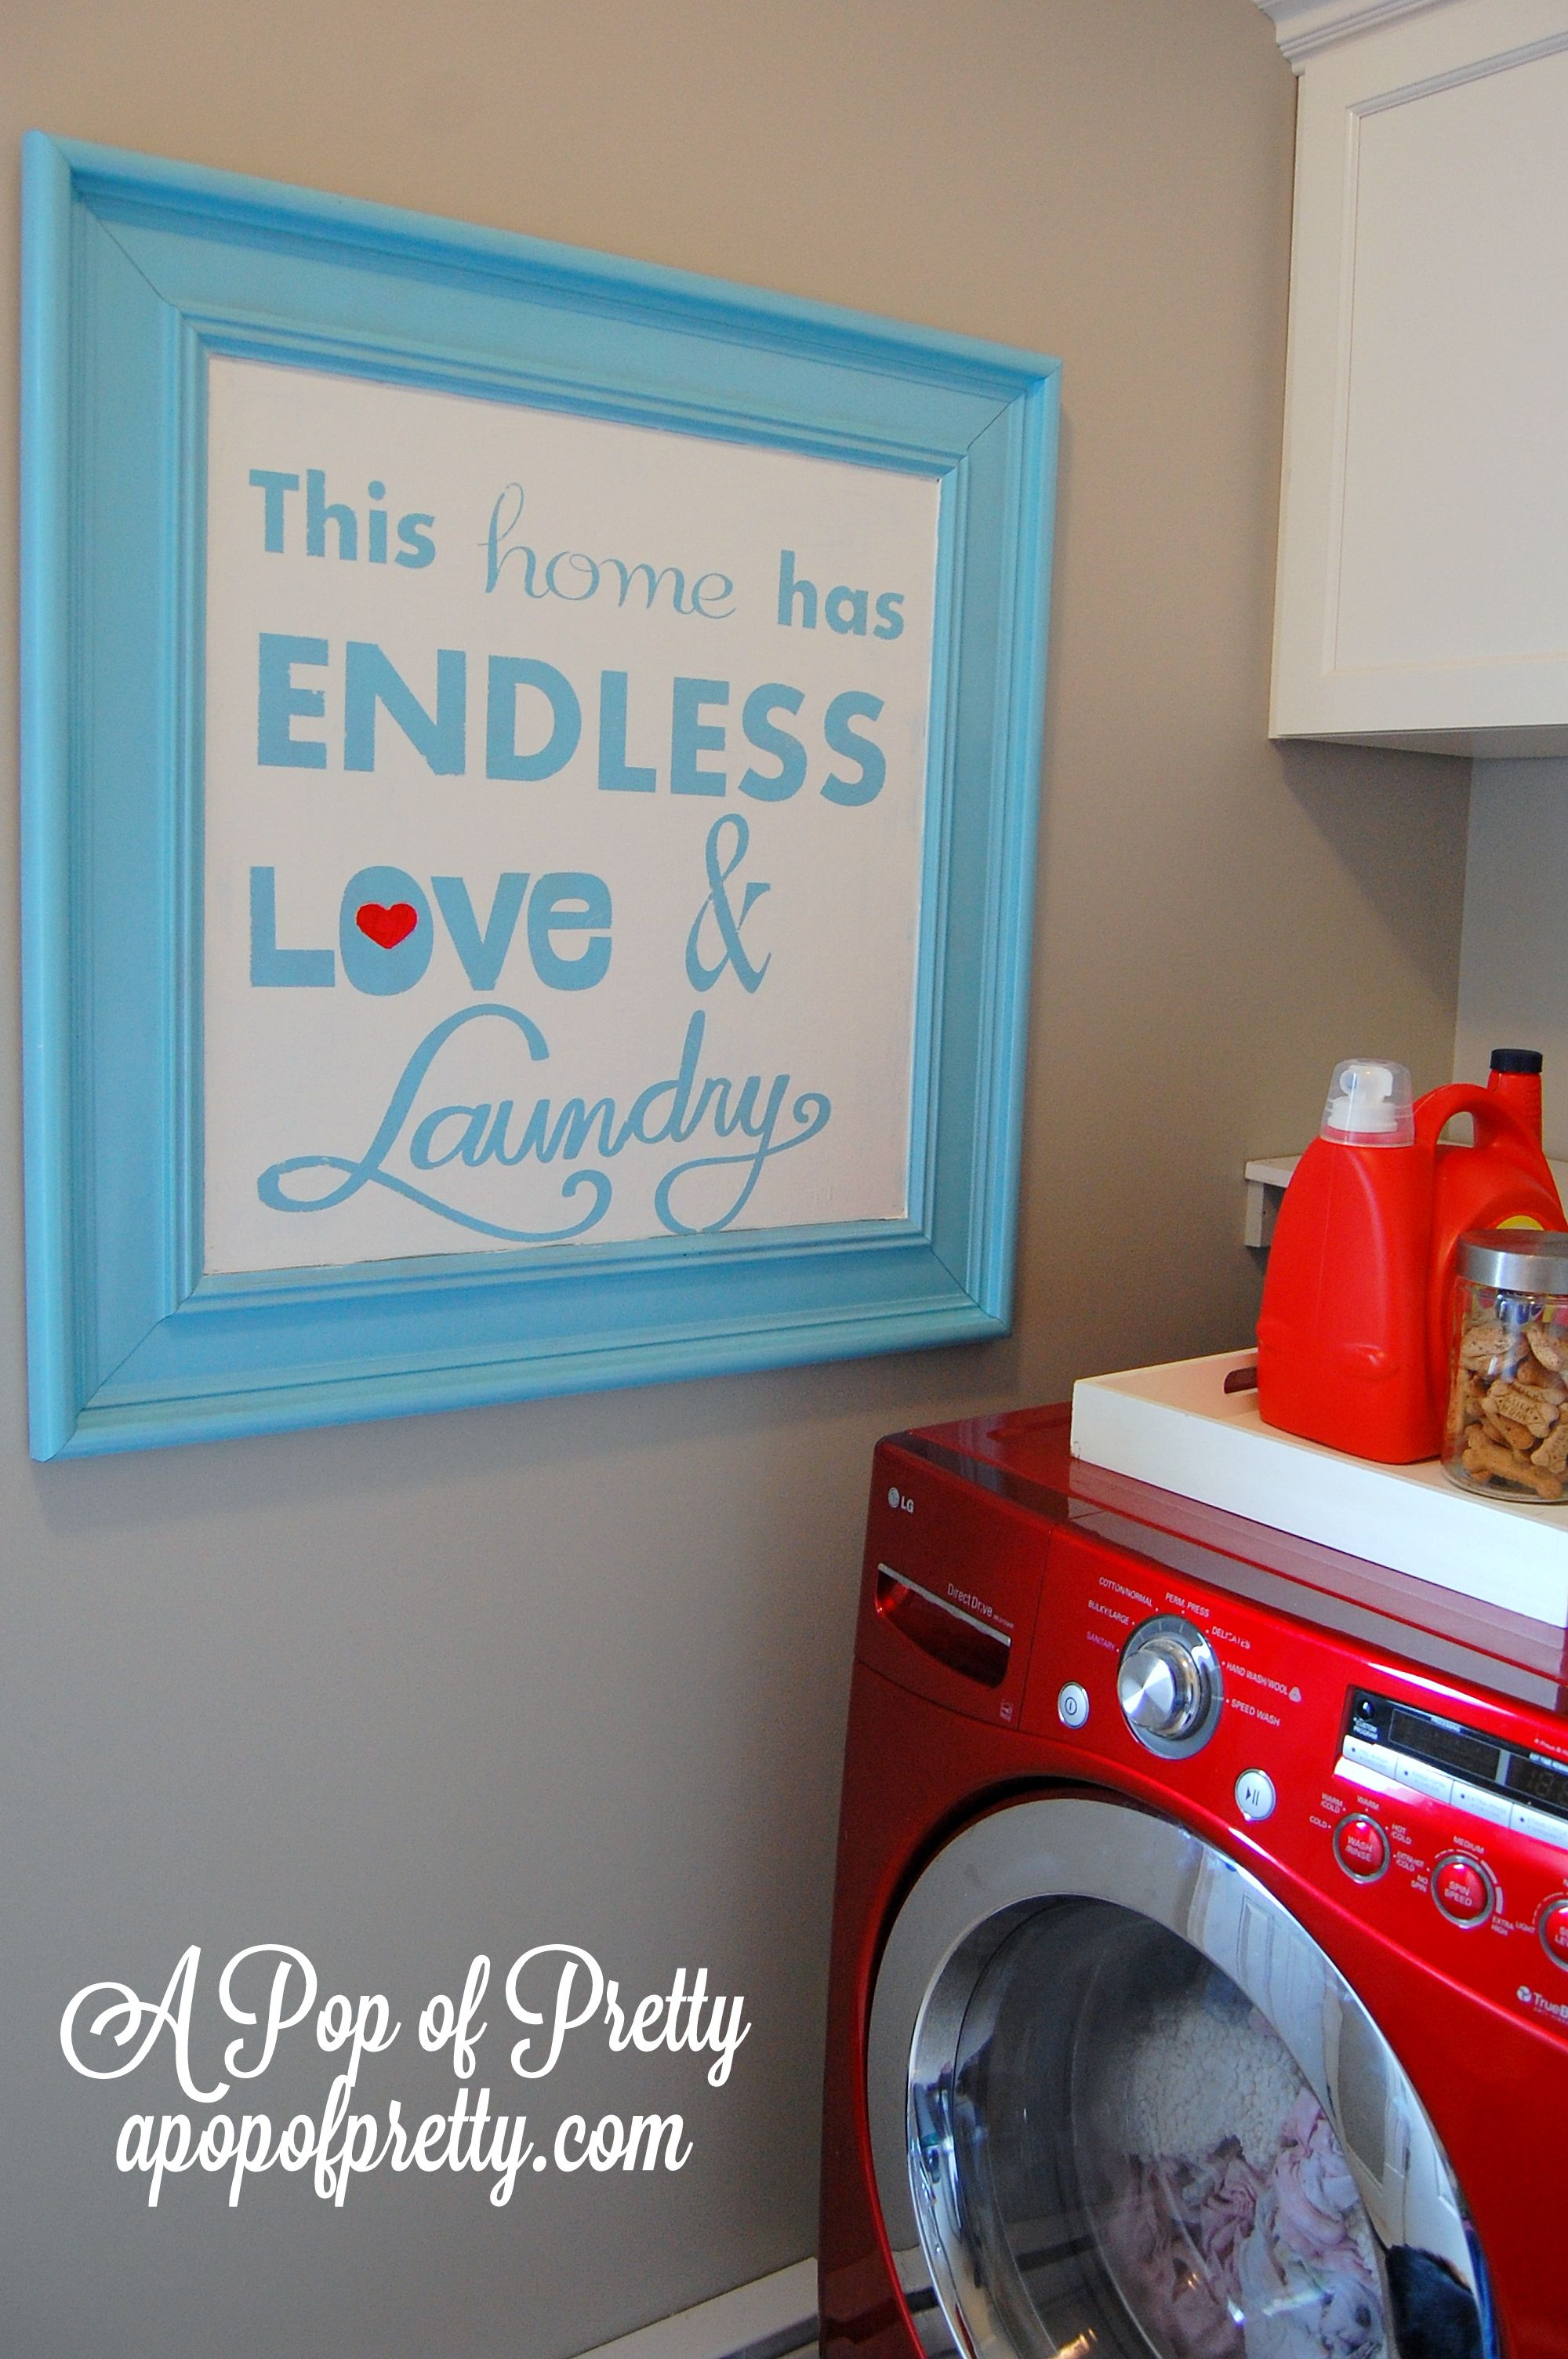 Endless Love Laundry Laundry Room Art Printable Tutorial